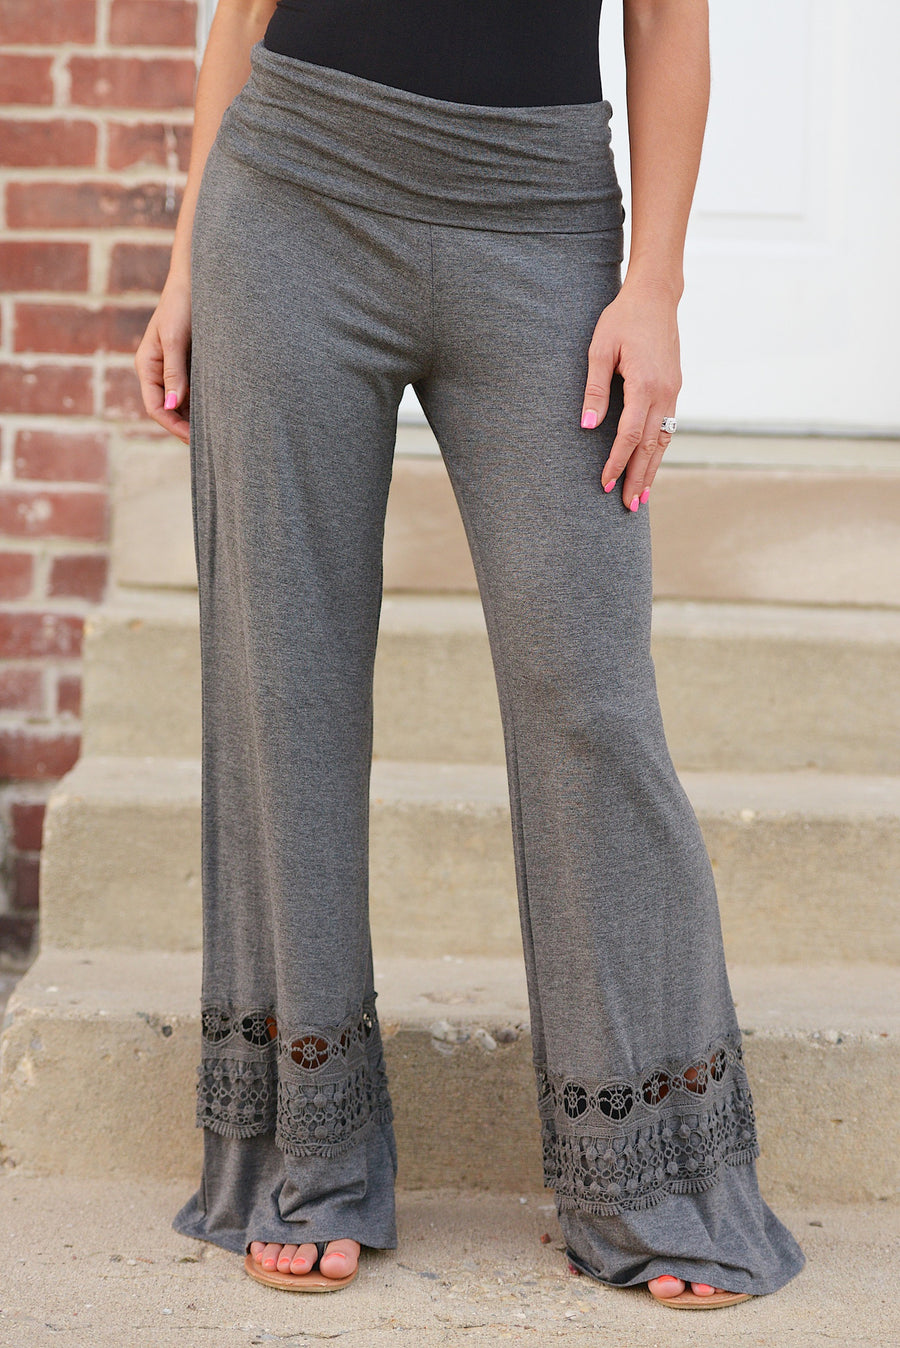 A Whole New World Palazzo Pants - crochet palazzo lounge pants, charcoal, Closet Candy Boutique